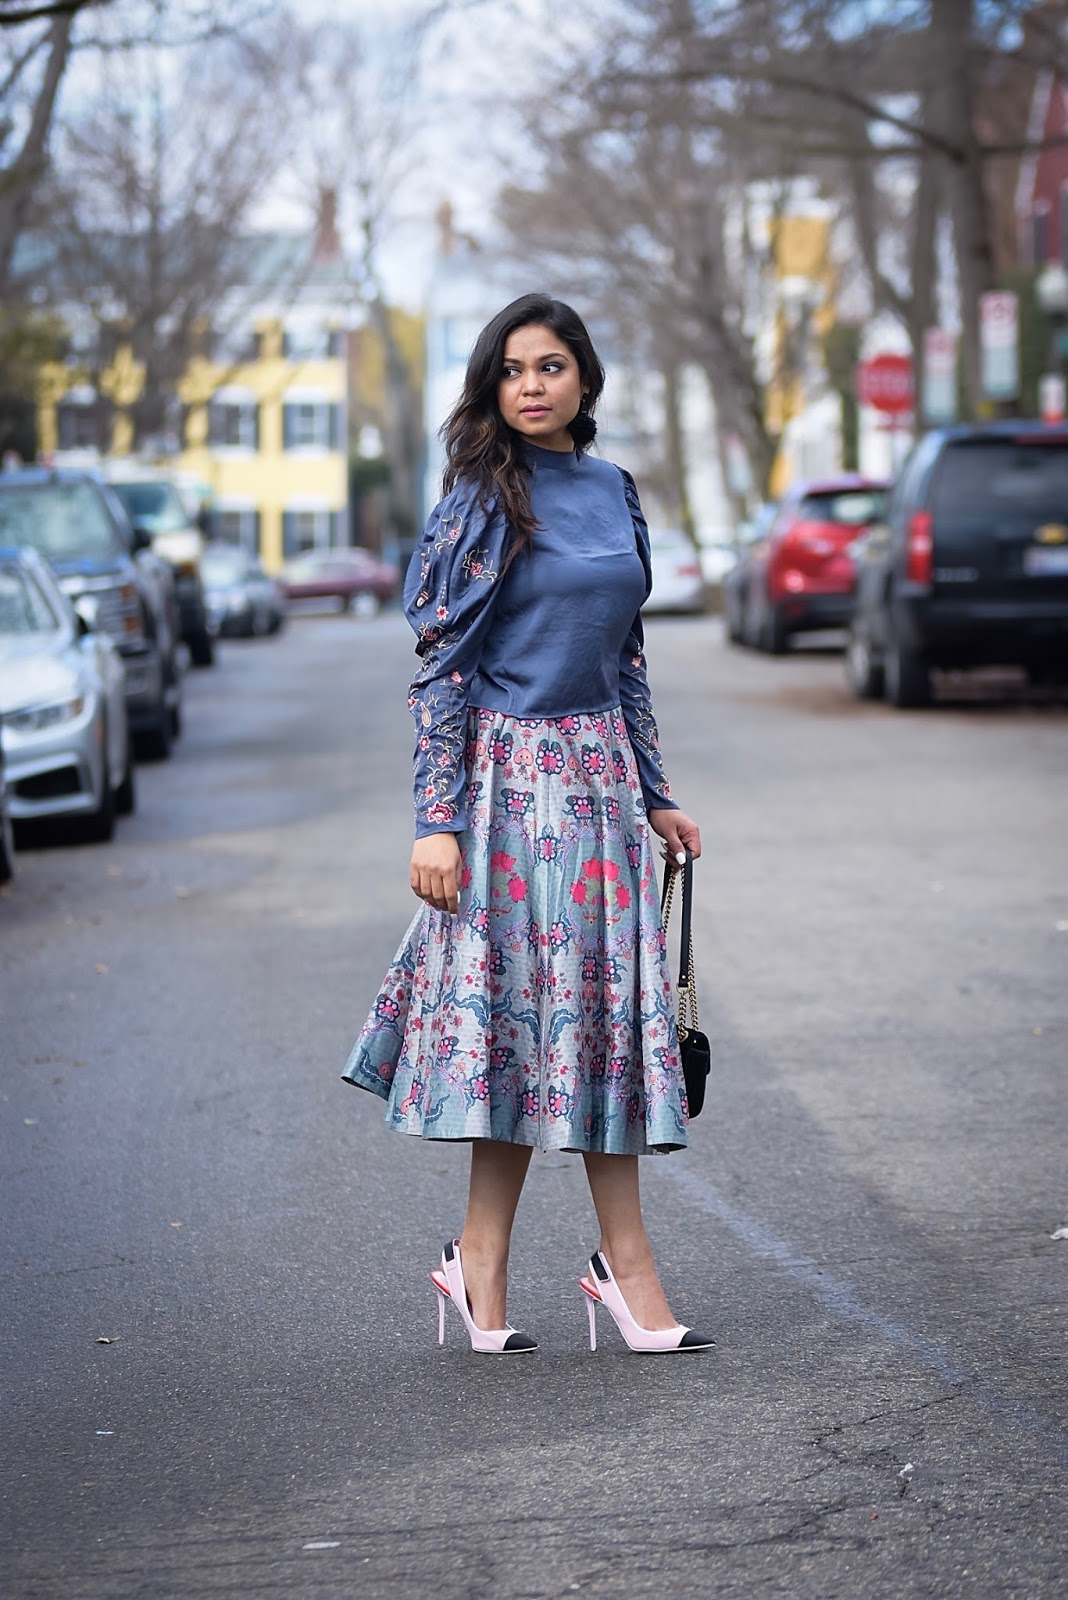 how to wear monochromatic skirt and blouse outfit, grey on grey, fashion, style, printed midi skirt, embroidered ruffle sleeve blouse, ootd, outfit of the day, life after thirty, lifestyle, myriad musings